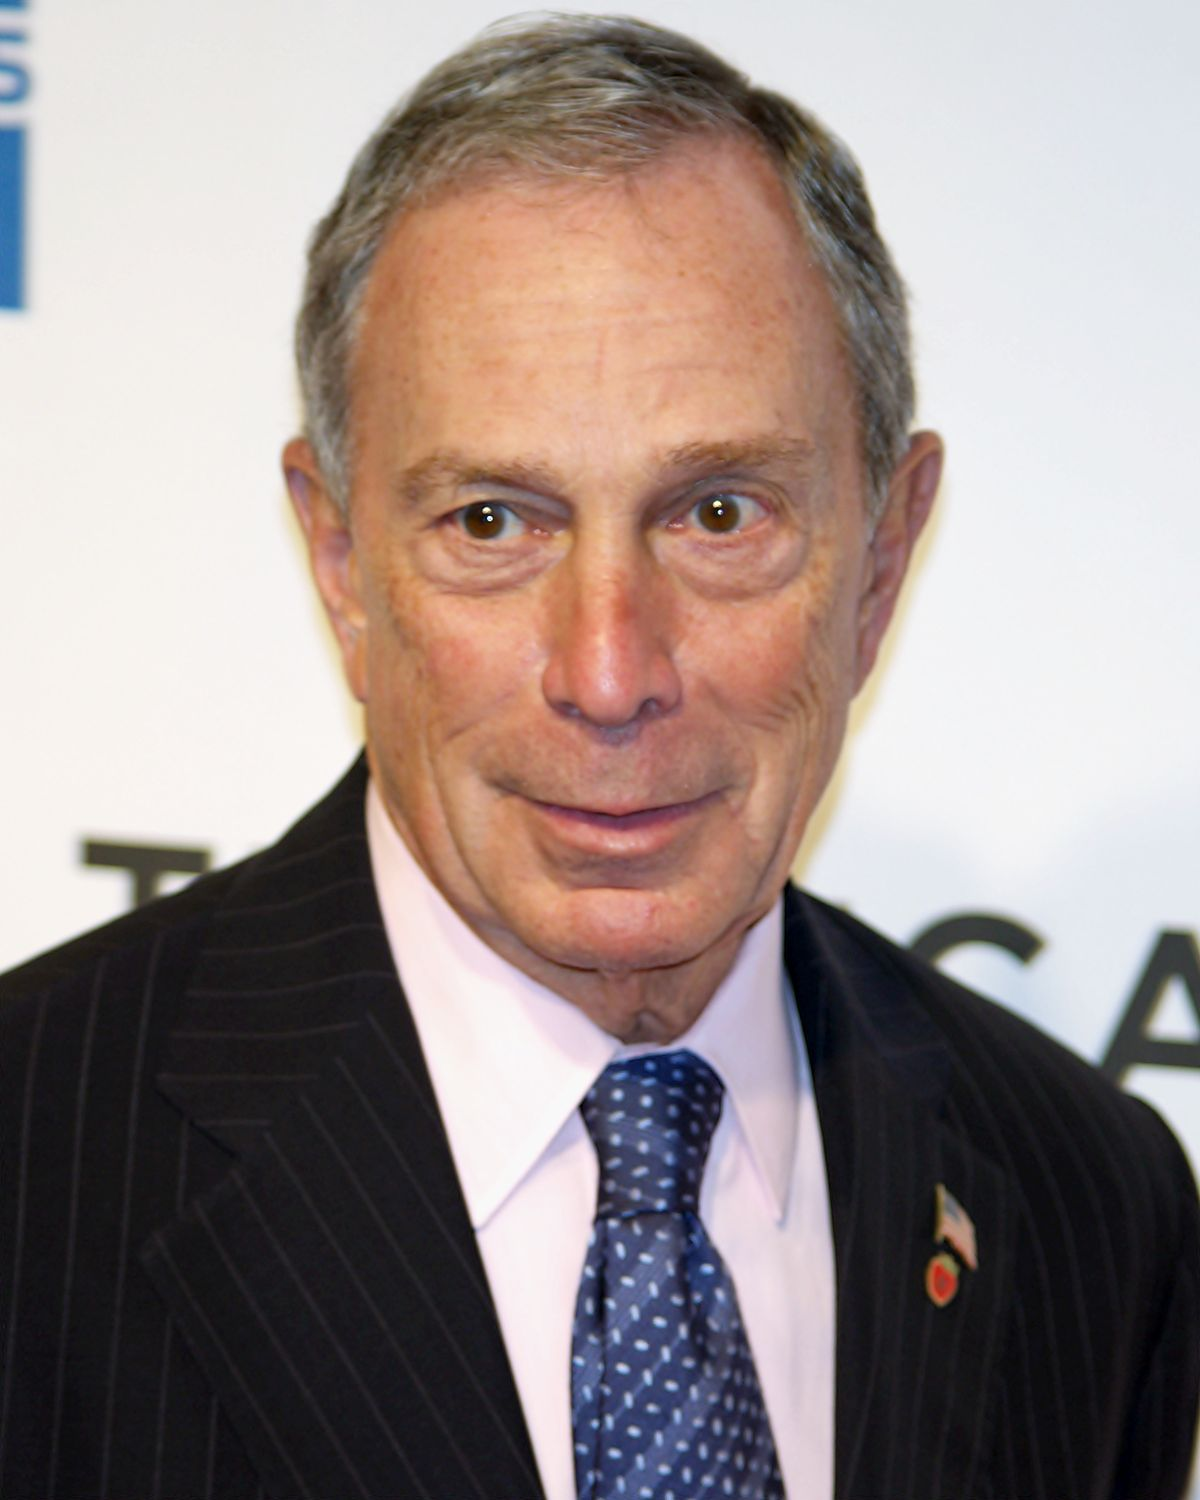 michael bloomberg - photo #7